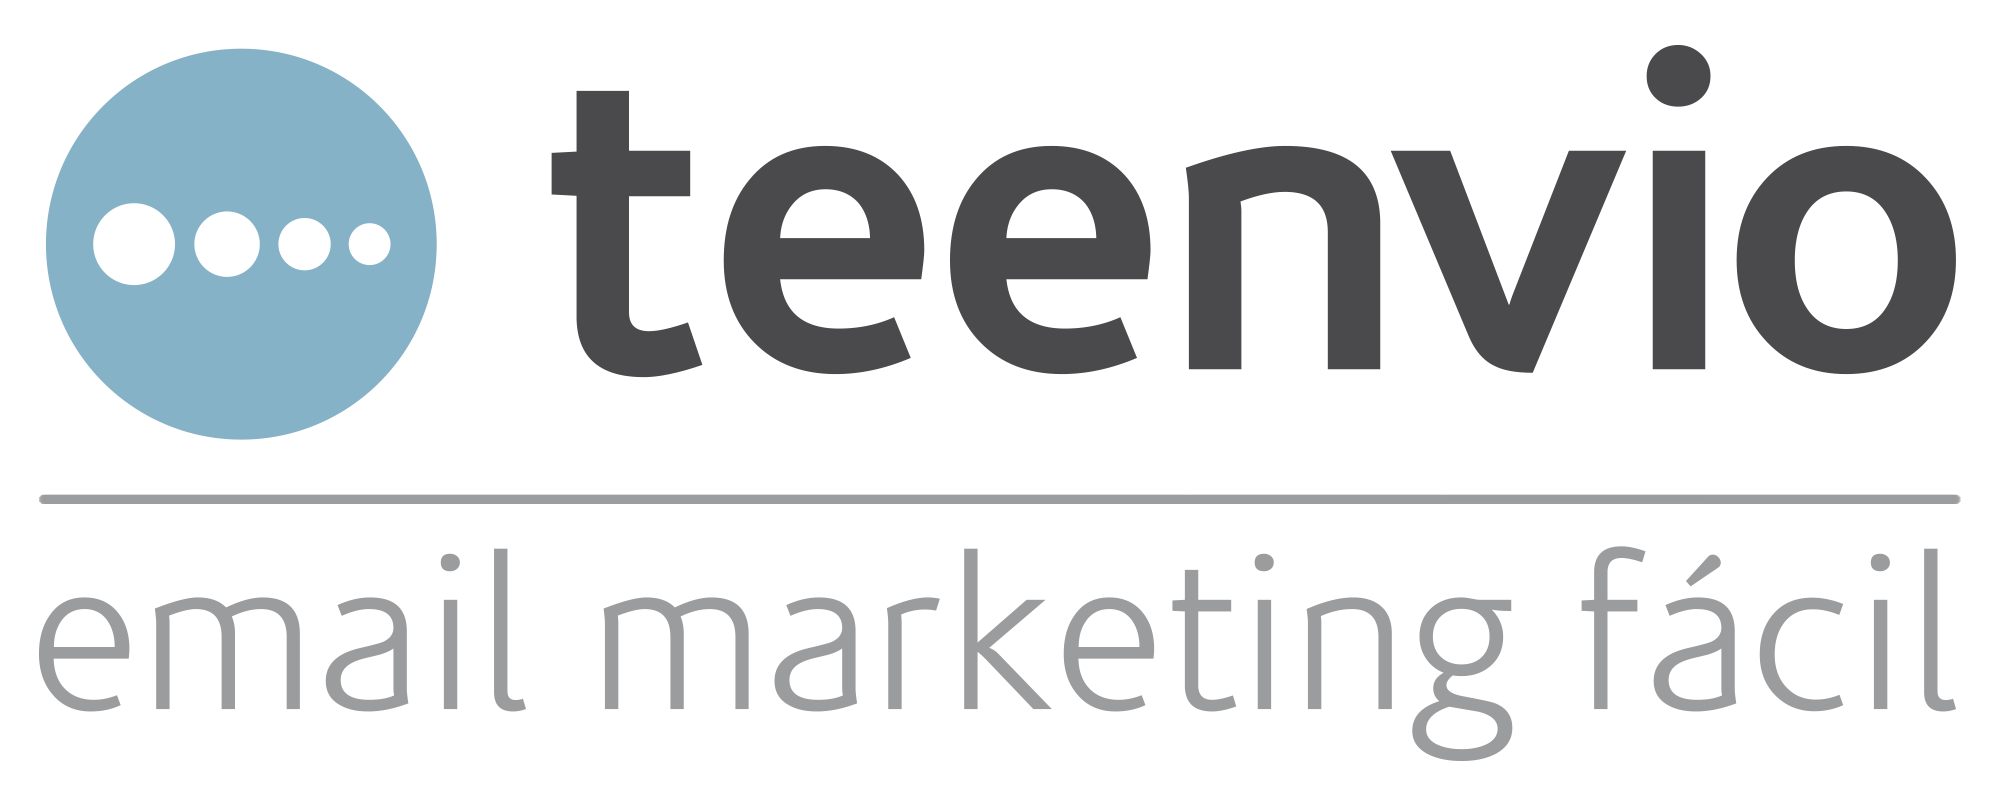 Herramientas para email marketing - teenvio